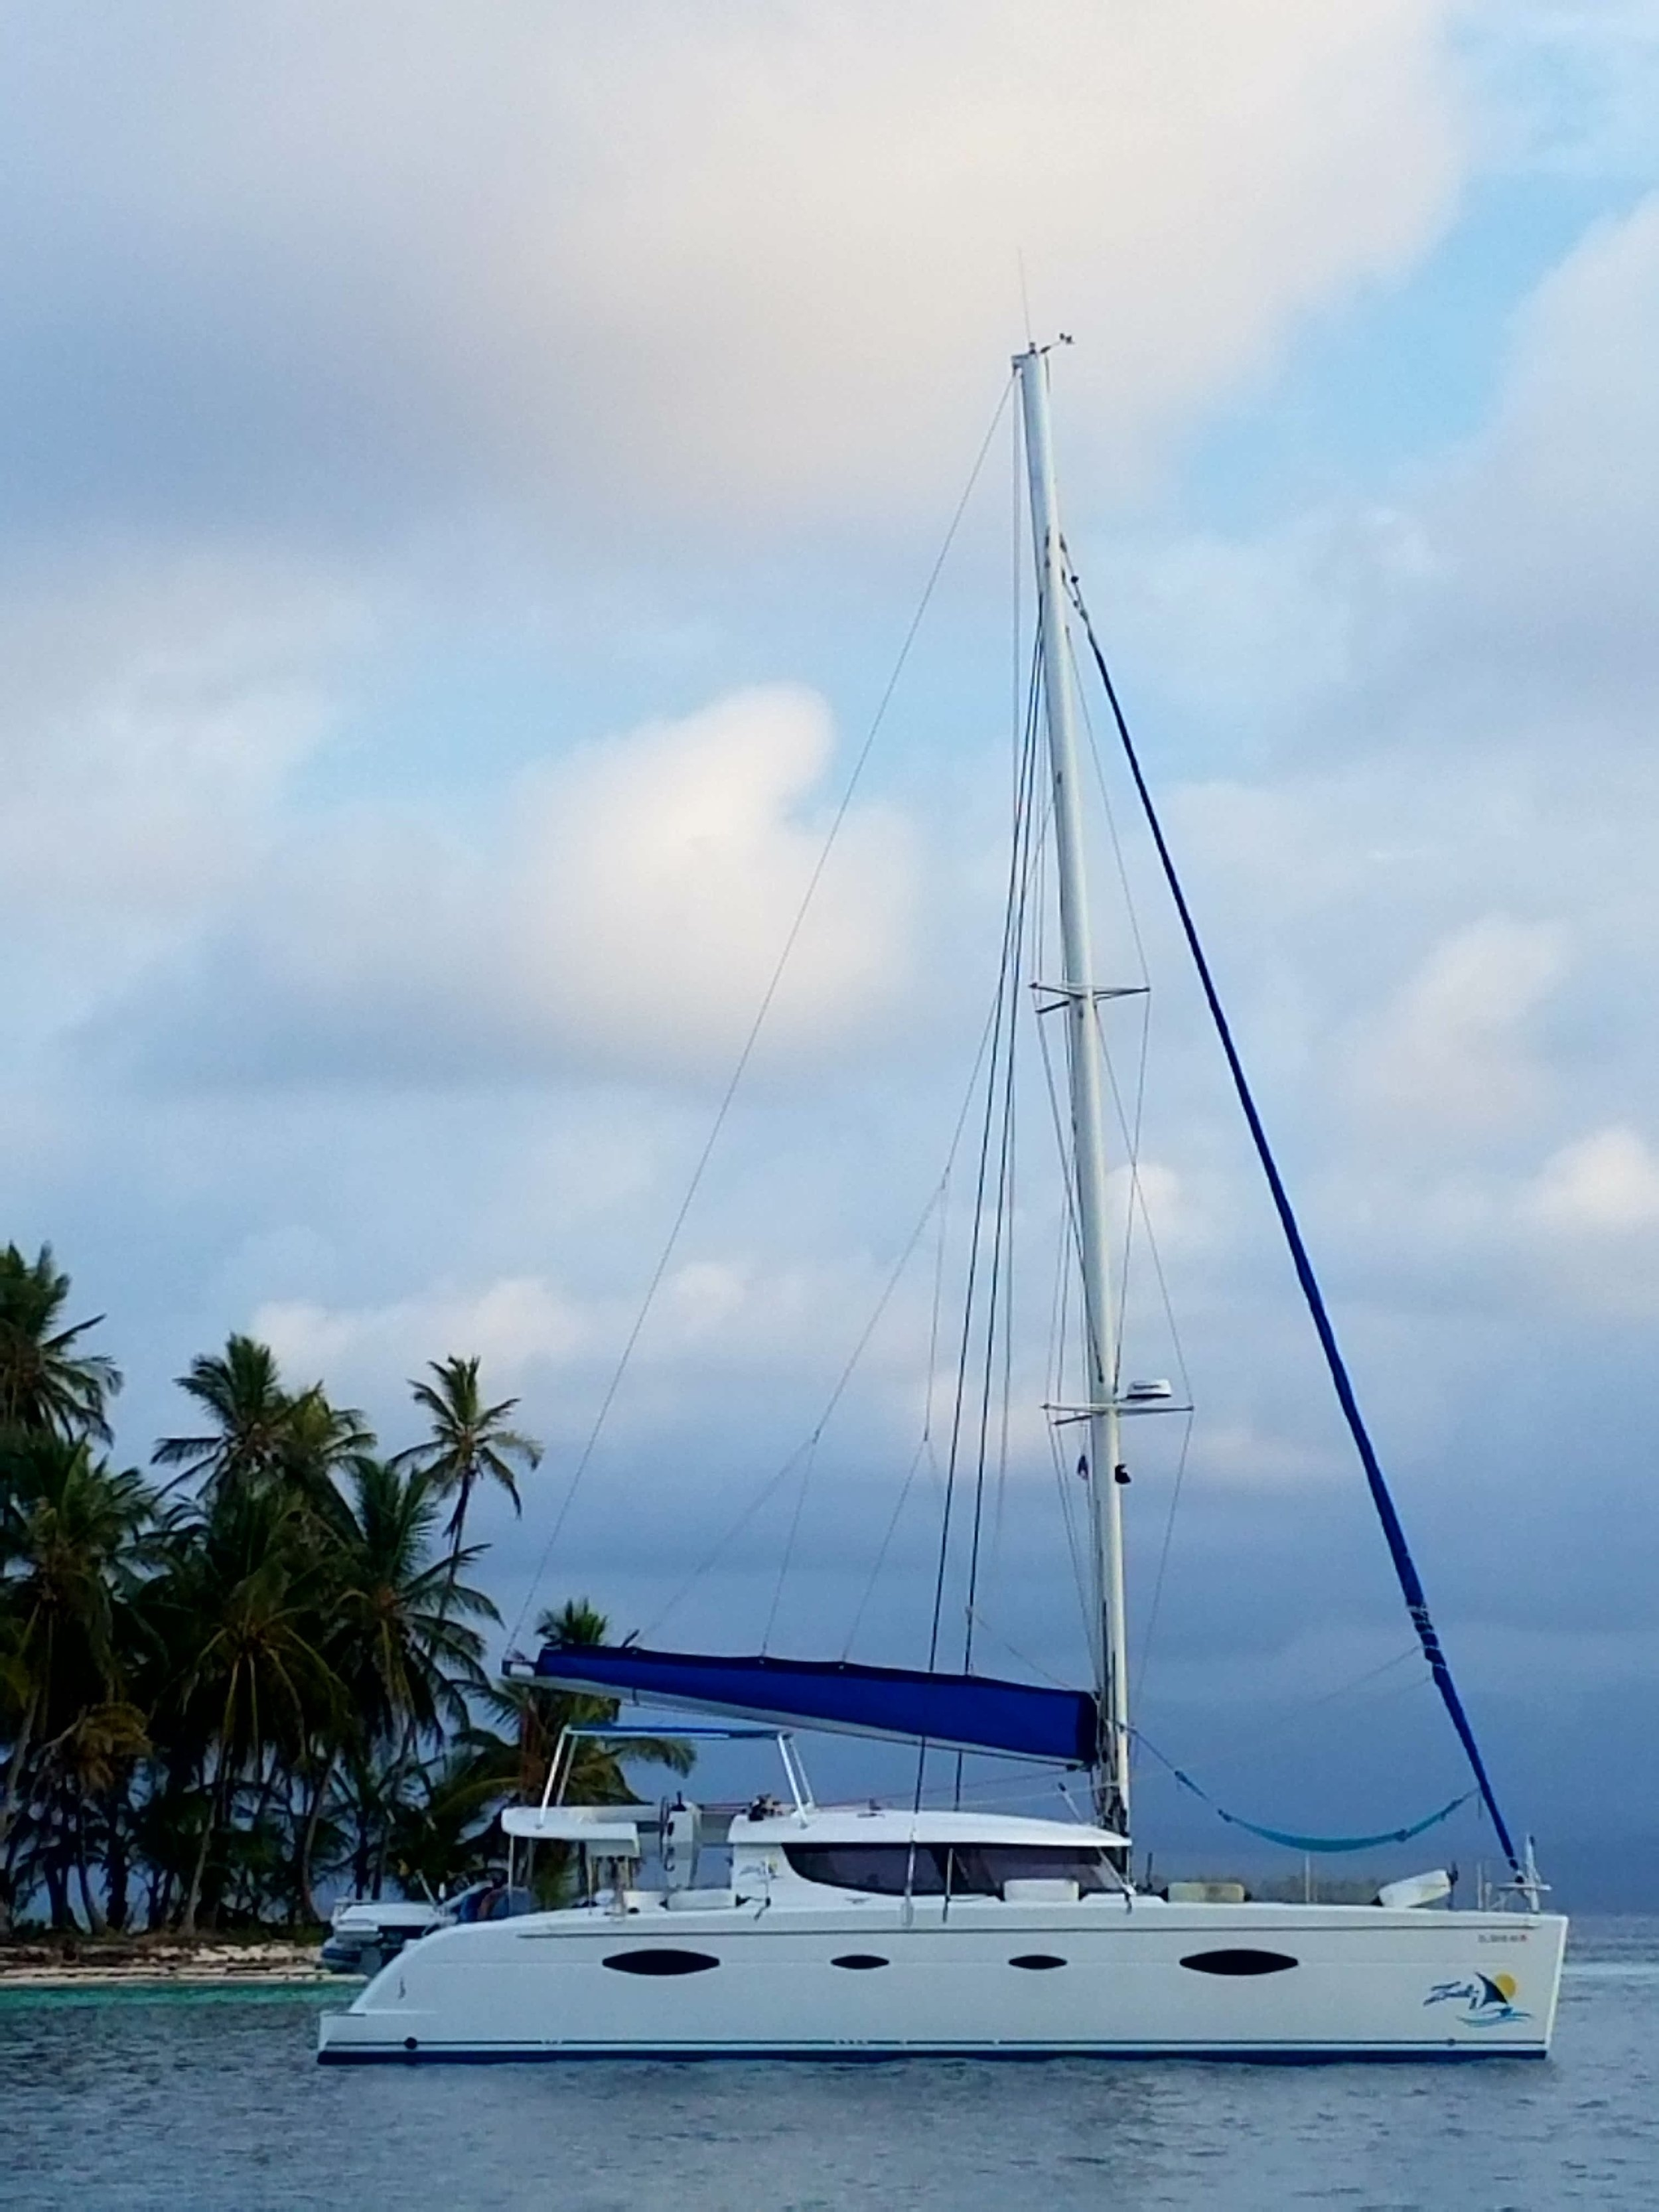 Zenith II - We offer exclusive charters among the San Blas Islands with the Zenith II, a modern 48-foot-long and 25-foot-wide catamaran built in France in 2008.An 11-foot dinghy with an outboard motor will bring you to and from the Zenith II and the islands of San Blas.